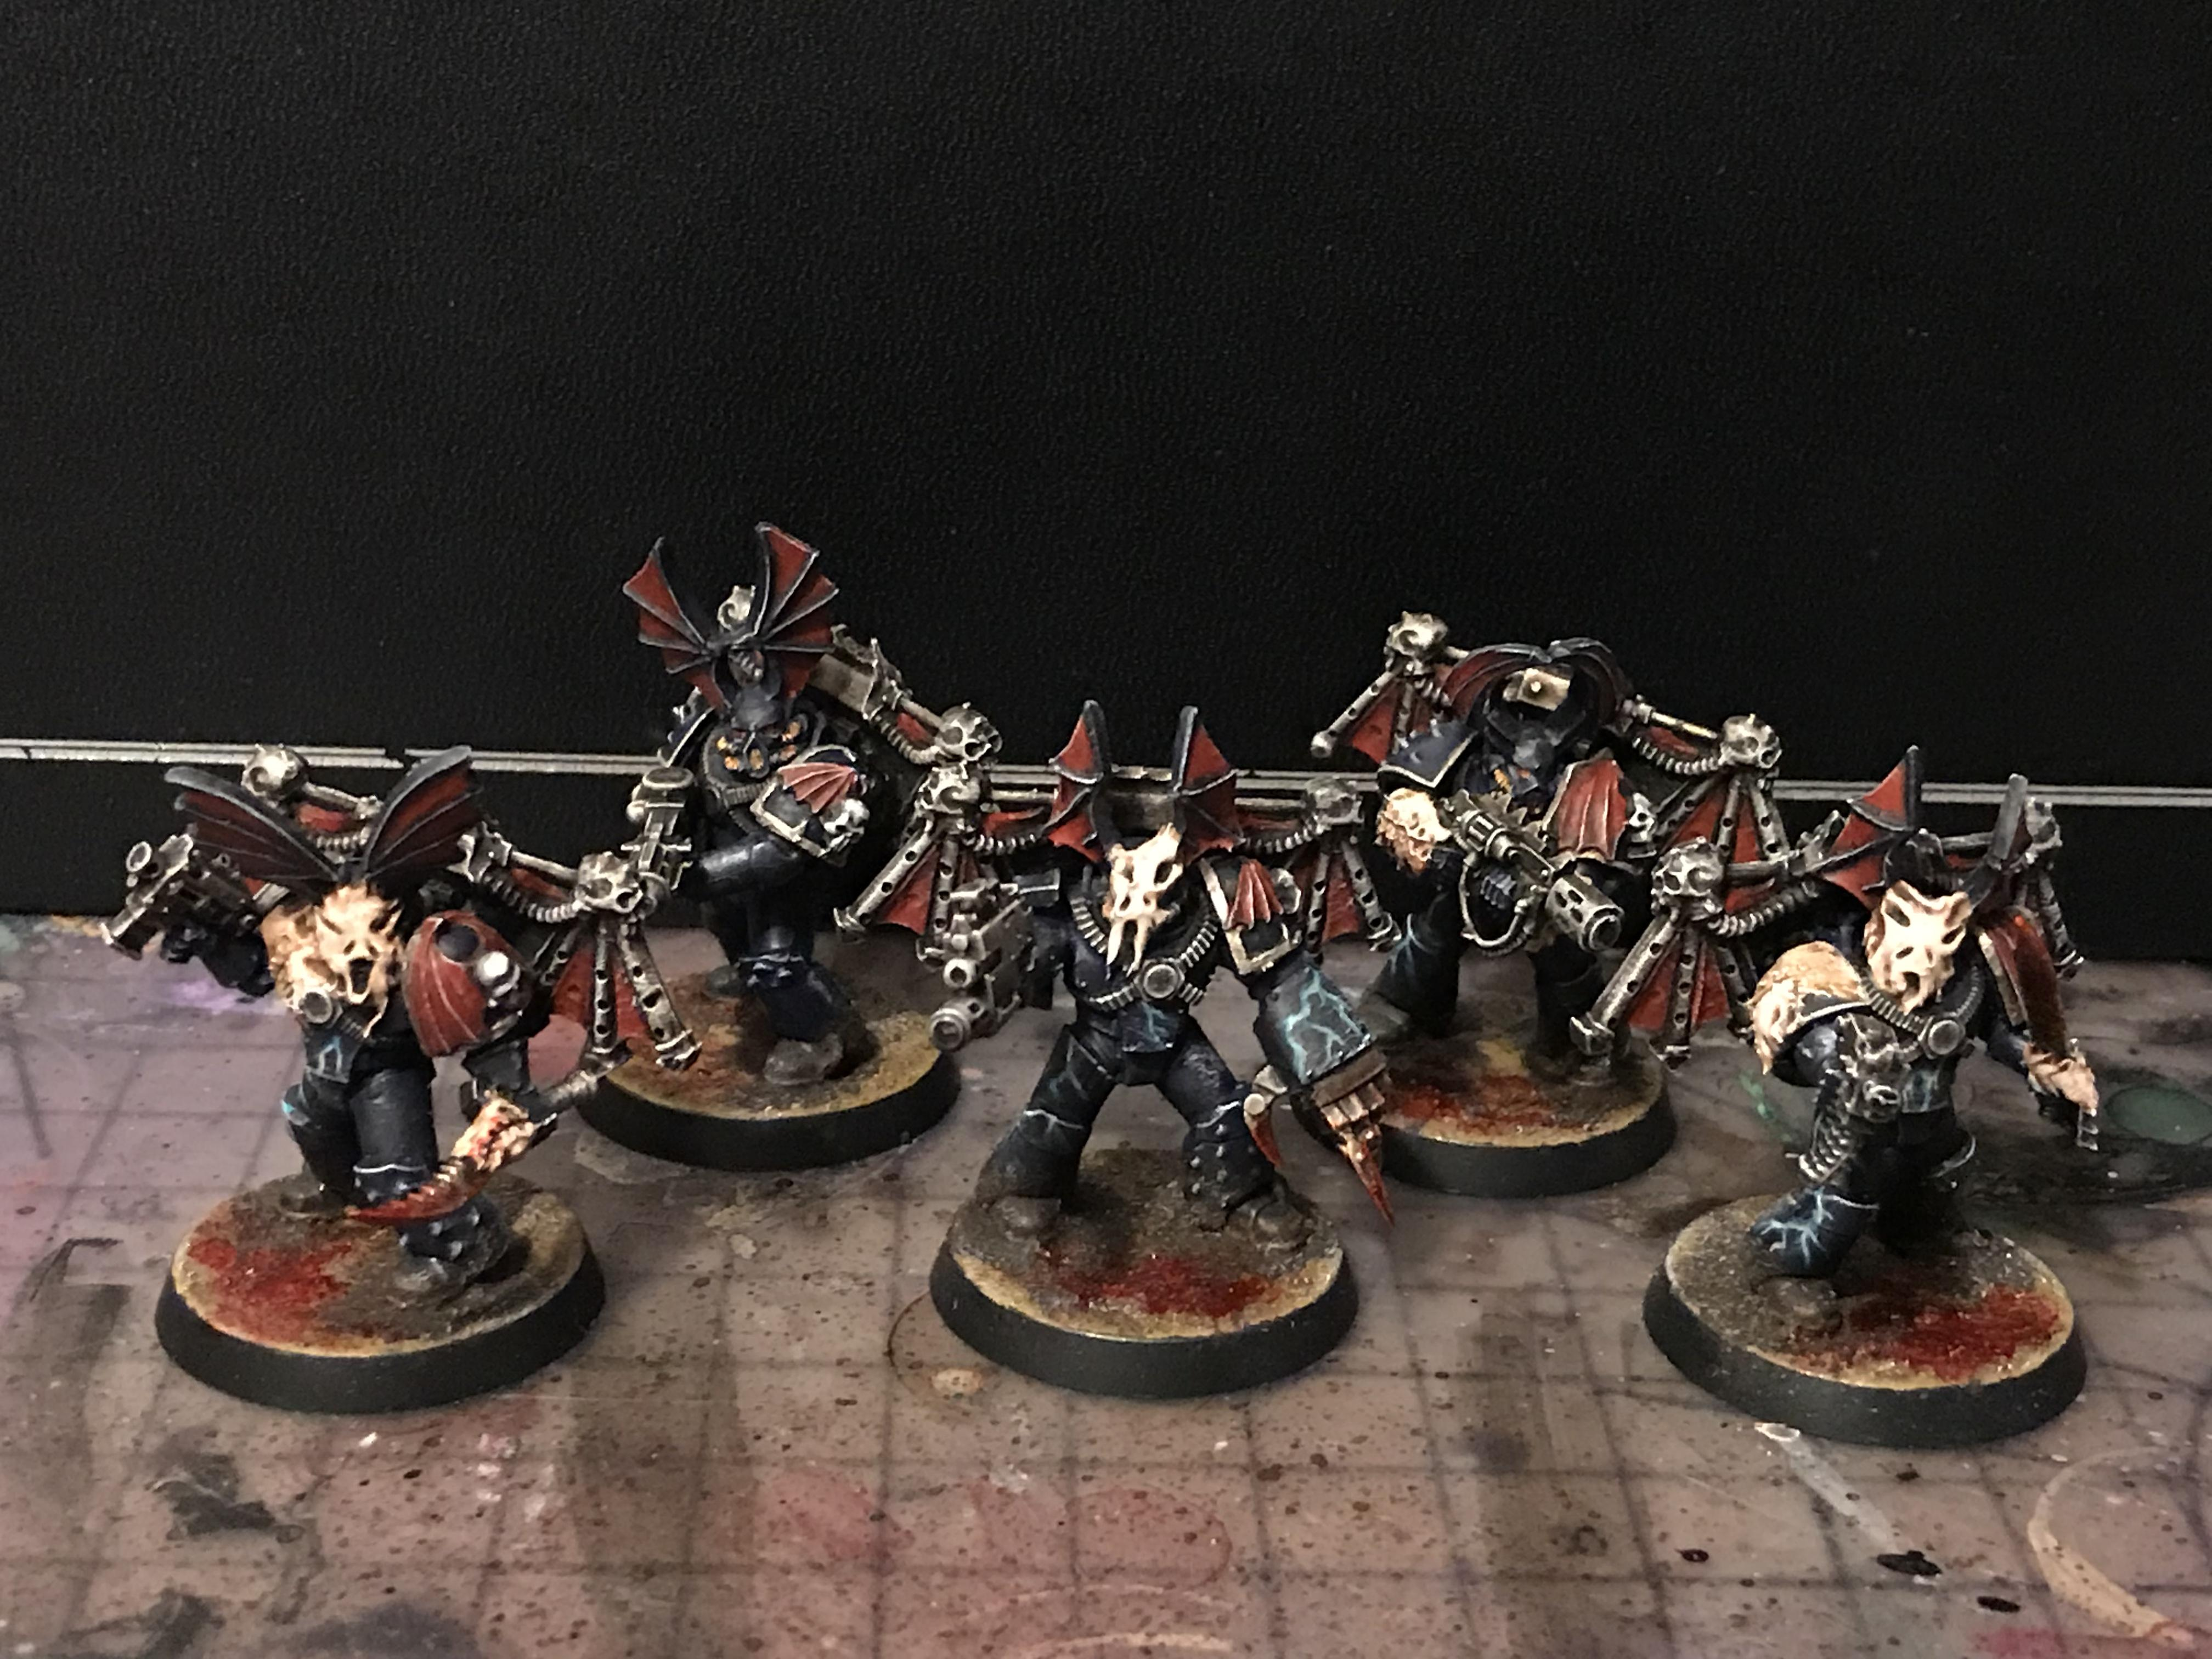 Armor, Army, Assault, Astardes, Attack, Black, Blood, Chaos, Conversion, Corrupted, Crimson, Curze, Death, Evil, Fast, Flayed, Flayer, Flesh, Green, Grisly, Hand, Heresy, Horrors, Horus, Kaos, Kill, Killers, Kit Bash, Konrad, Legion, Legionnaire, Legionnaires, Legionnes, Legions, Lightning, Lord, Lords, Man, Mask, Murder, Murderers, Night, Night Lords, Pained, Pirate, Pirates, Power, Primarch, Rage, Raiders, Raptors, Reaver, Reavers, Red, Renegade, Renegades, Saboteur, Sculpting, Shadow, Shroud, Skin, Soul, Space, Space Marines, Stalkers, Stealth, Stuff, Tactics, Team, Terror, Torture, Traitor, Traitors, Troops, Trophies, Twisted, Vile, Violence, Violent